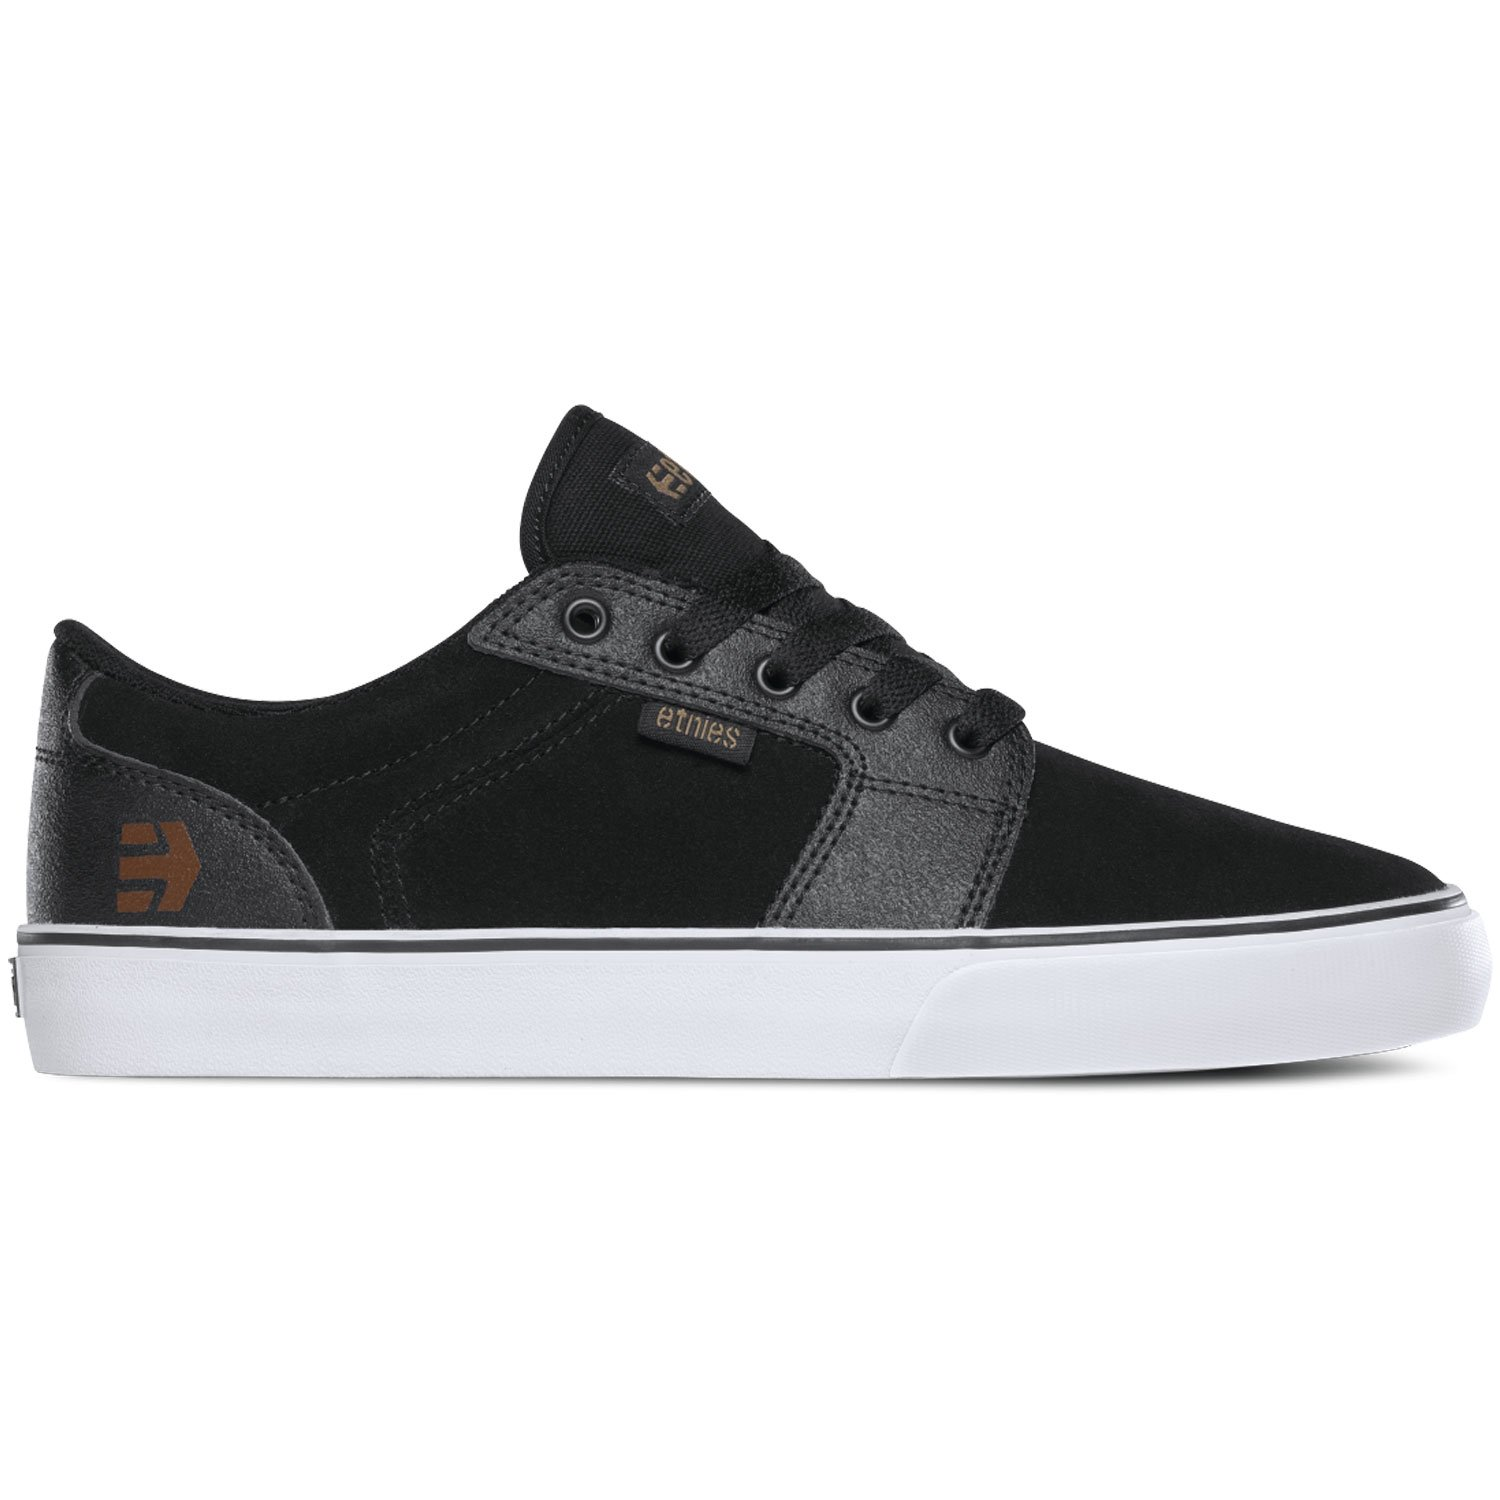 Etnies Barge LS Skate Shoe 12 D(M) US|Black/Gum/White